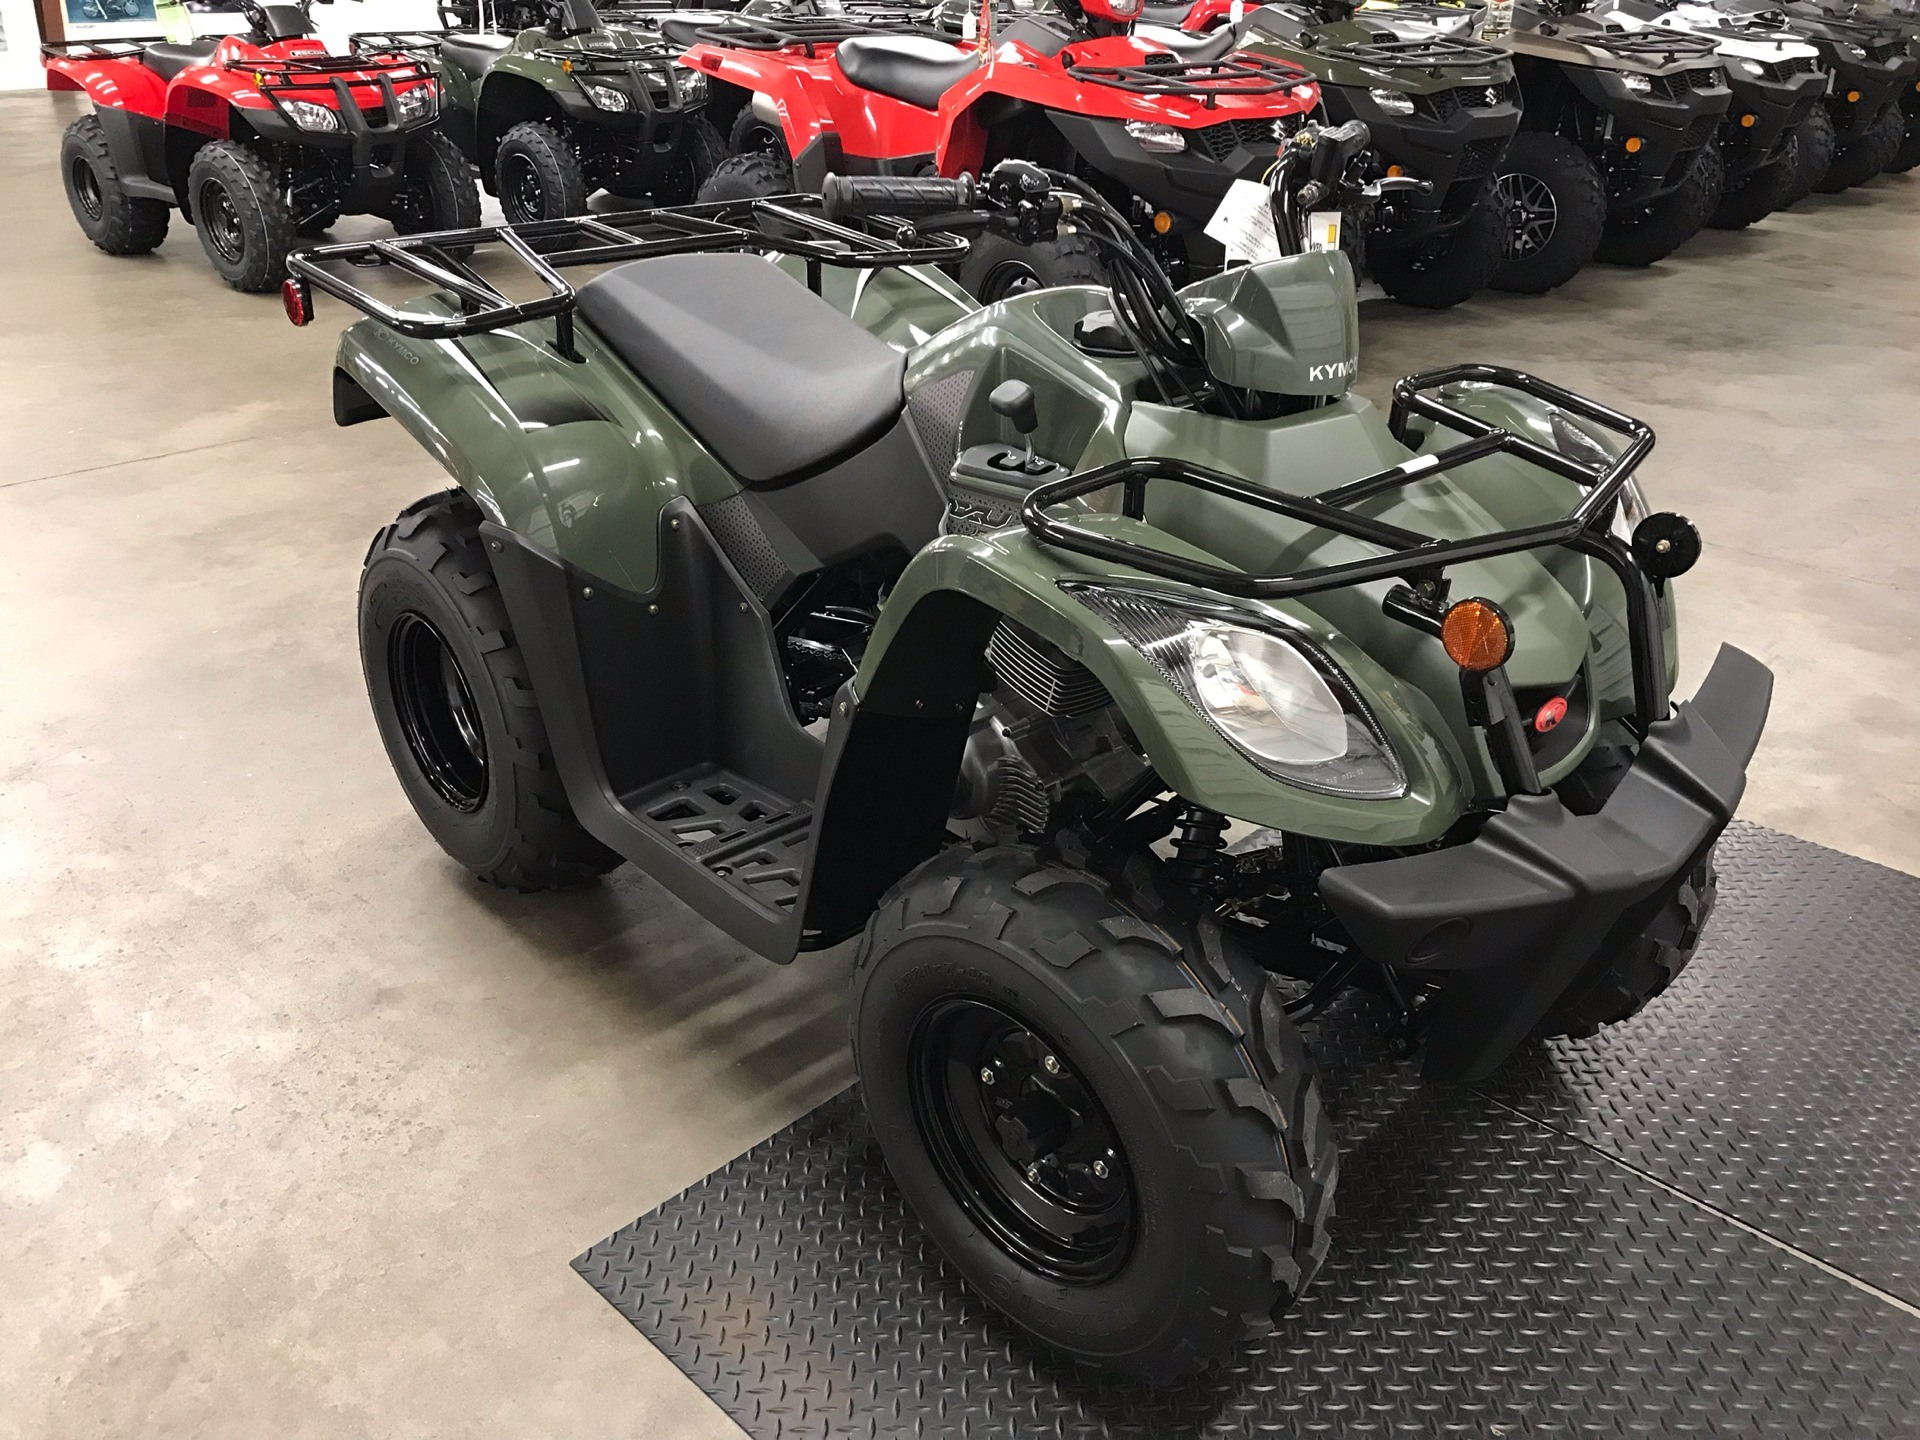 2019 Kymco MXU 150X in Sanford, North Carolina - Photo 1